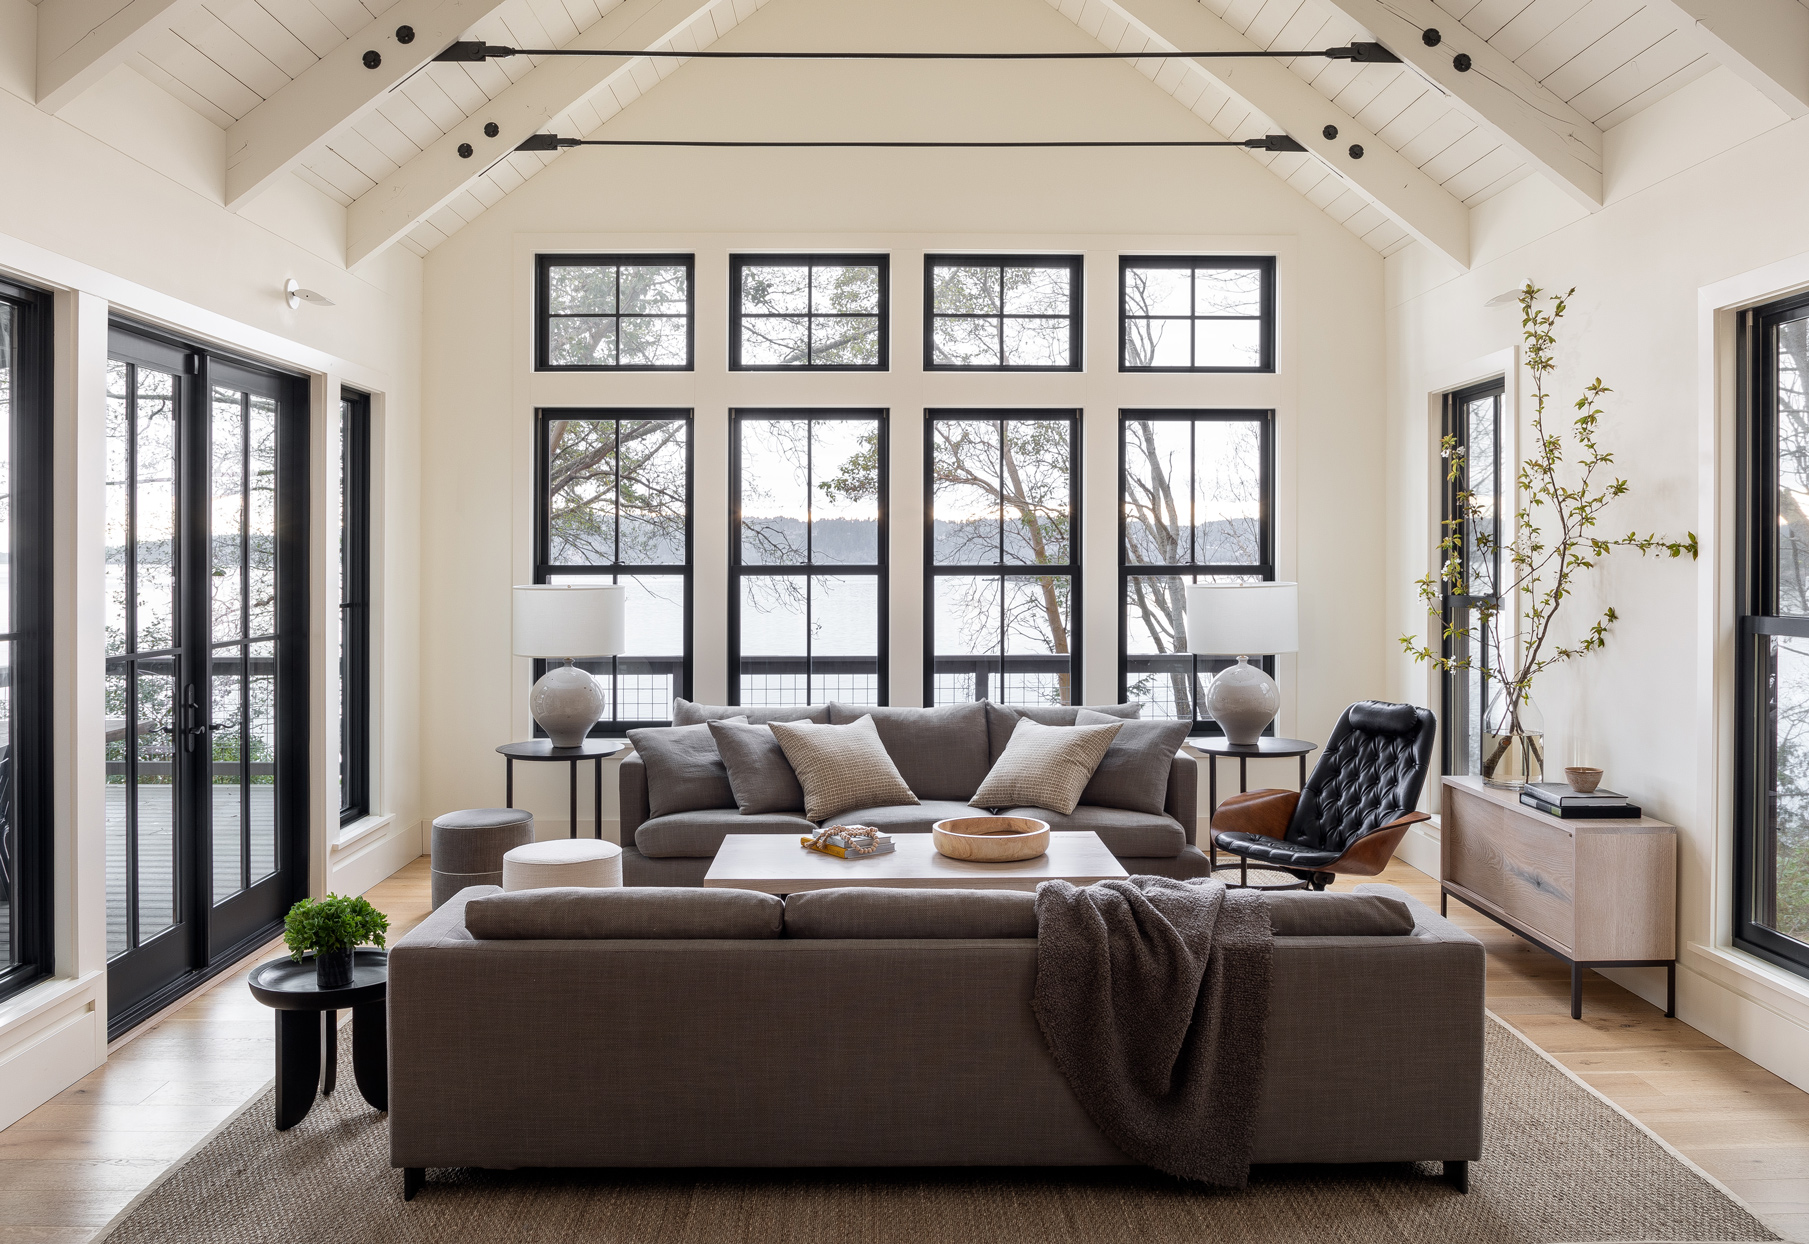 neutral-colored living room with windows overlooking lake